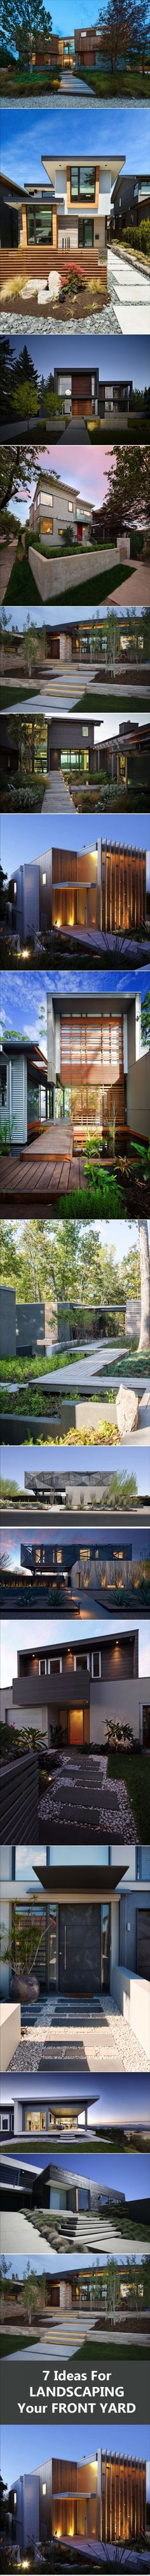 7 Landscaping Ideas For Your Front Yard | CONTEMPORIST